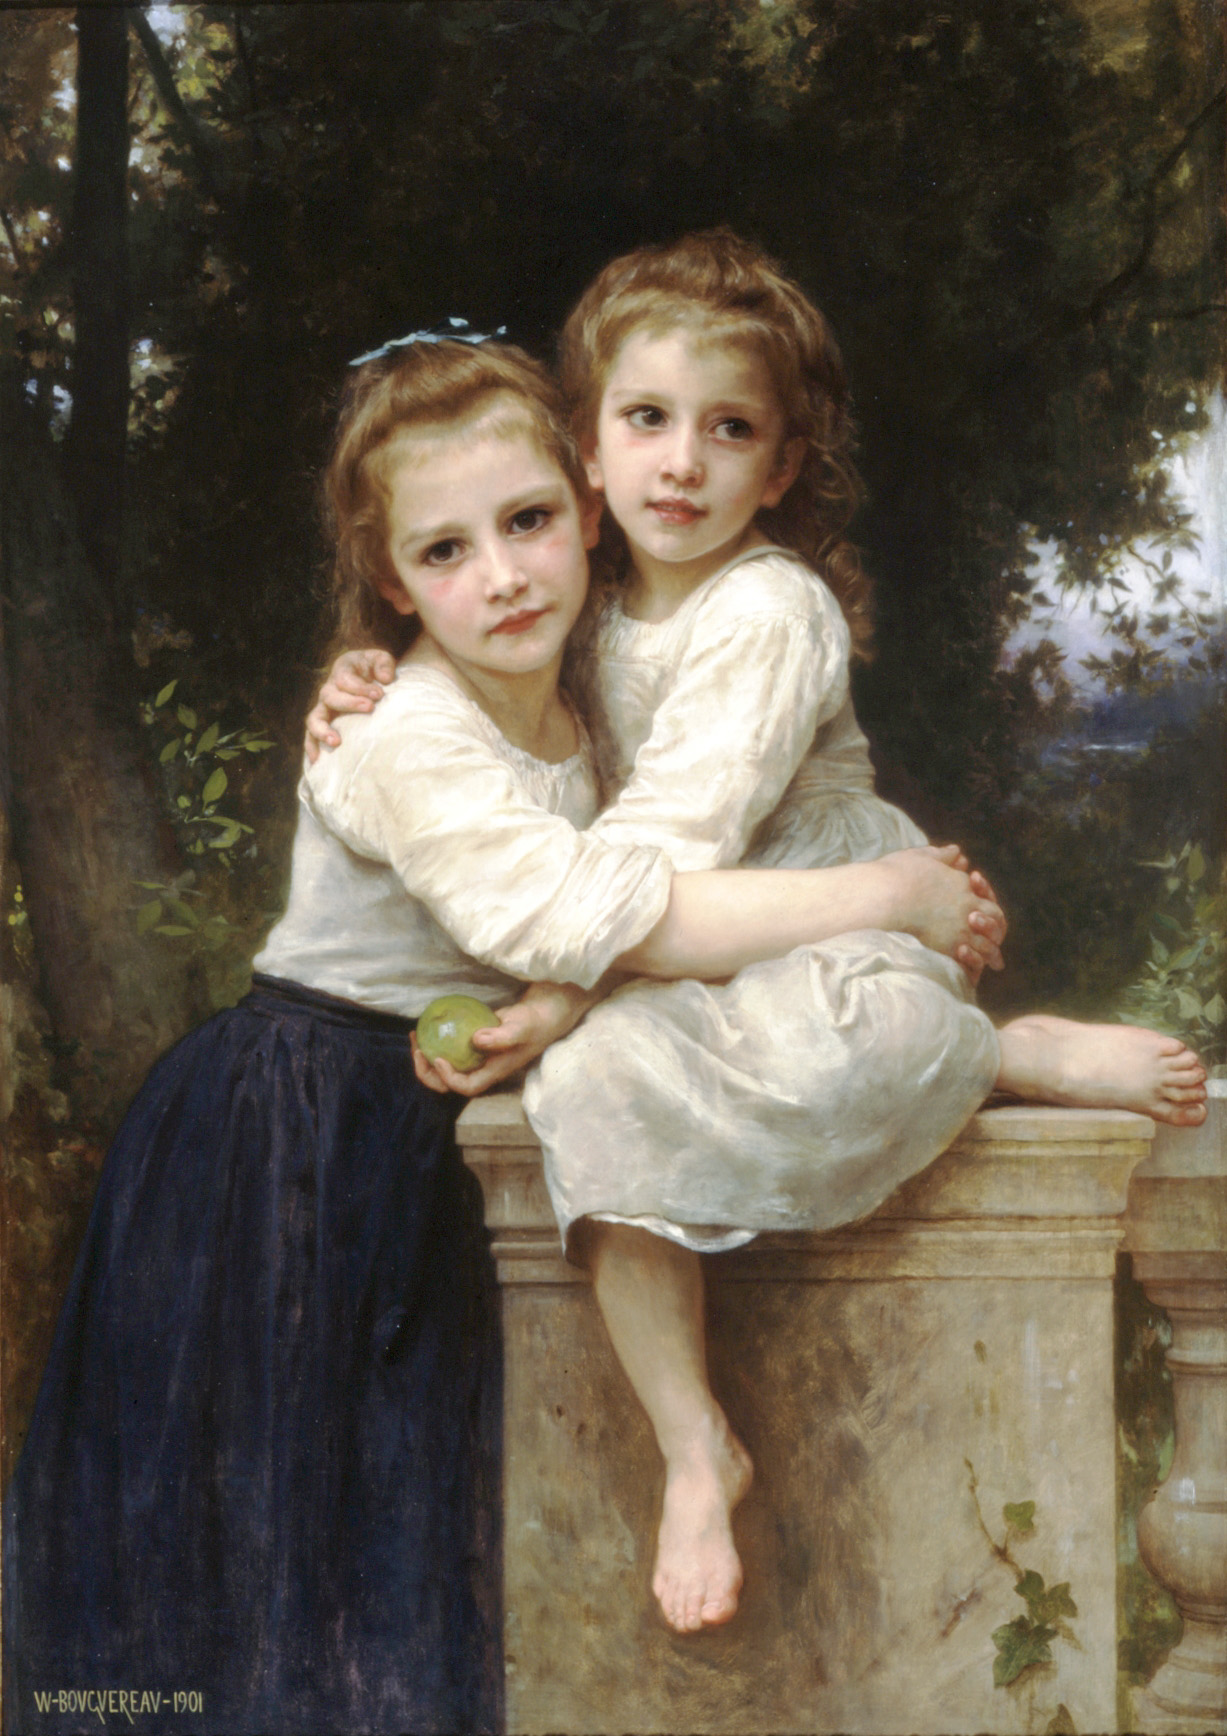 Artist: William Adolphe Bouguereau